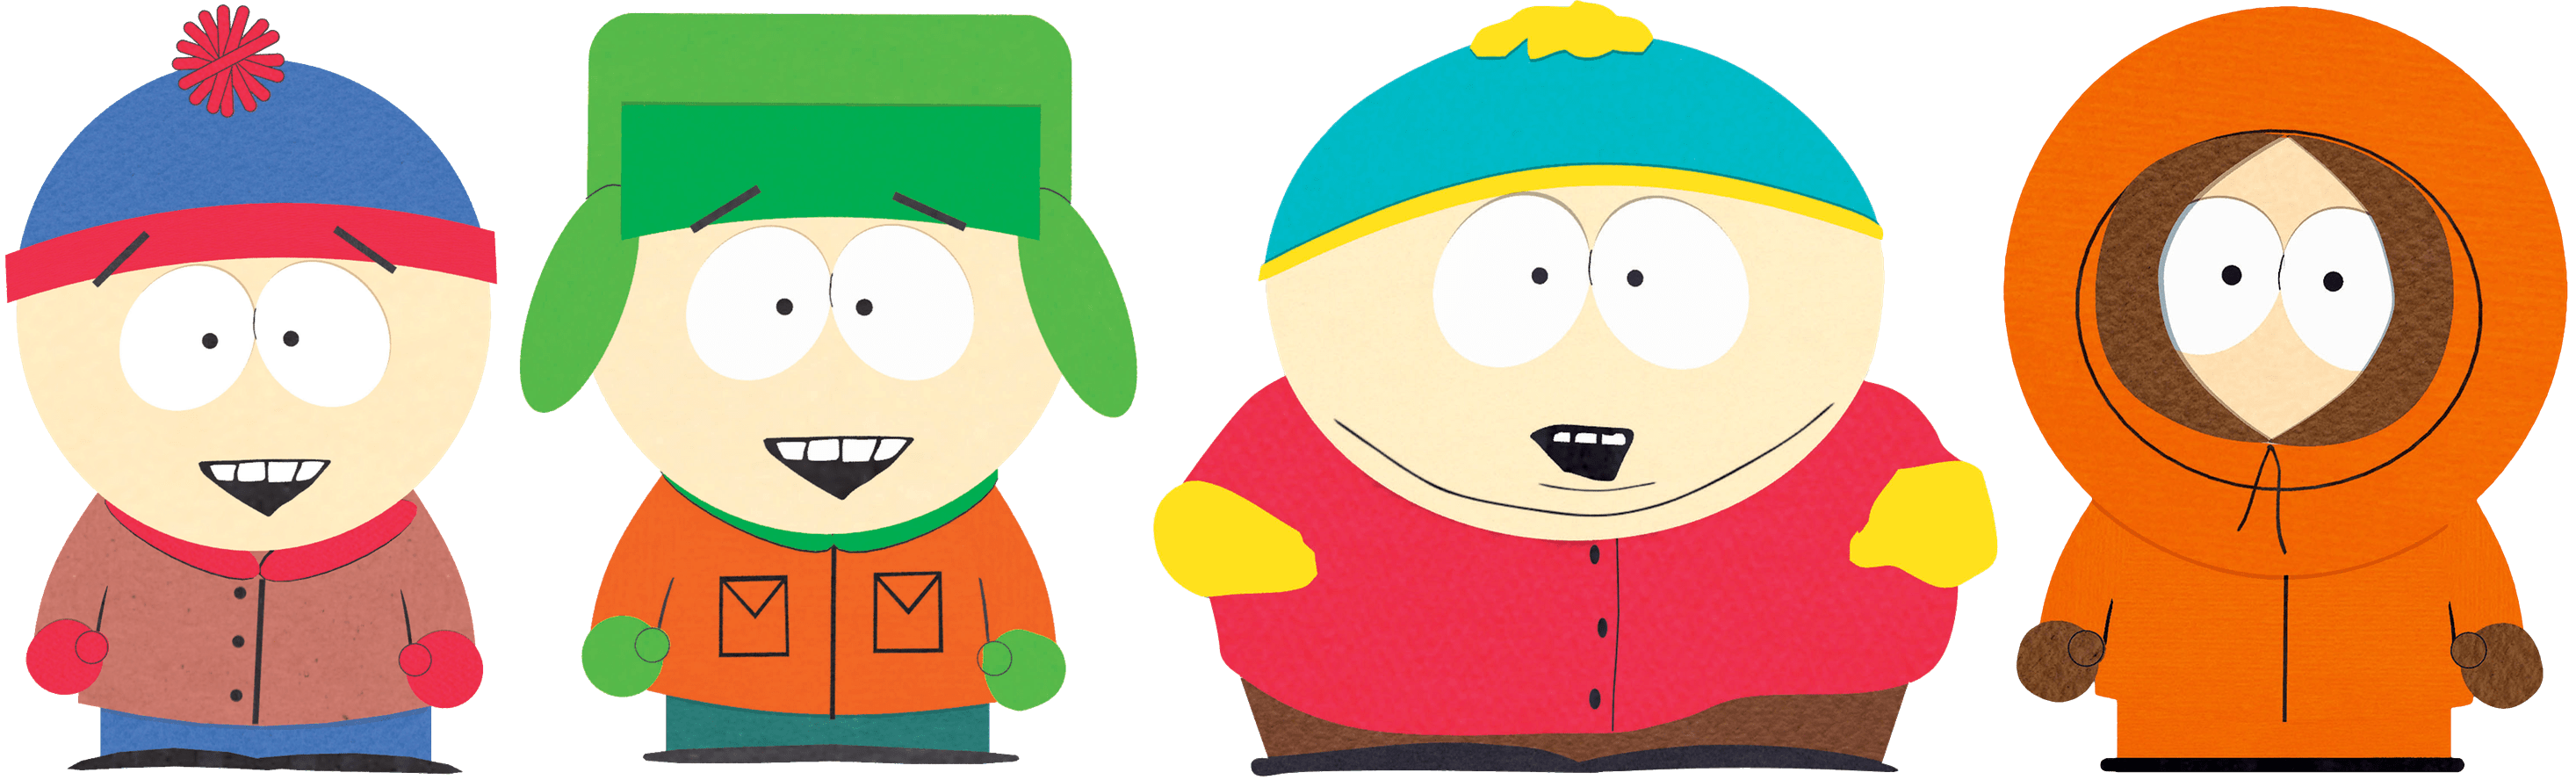 Television- is south park only appealing to american audiences?